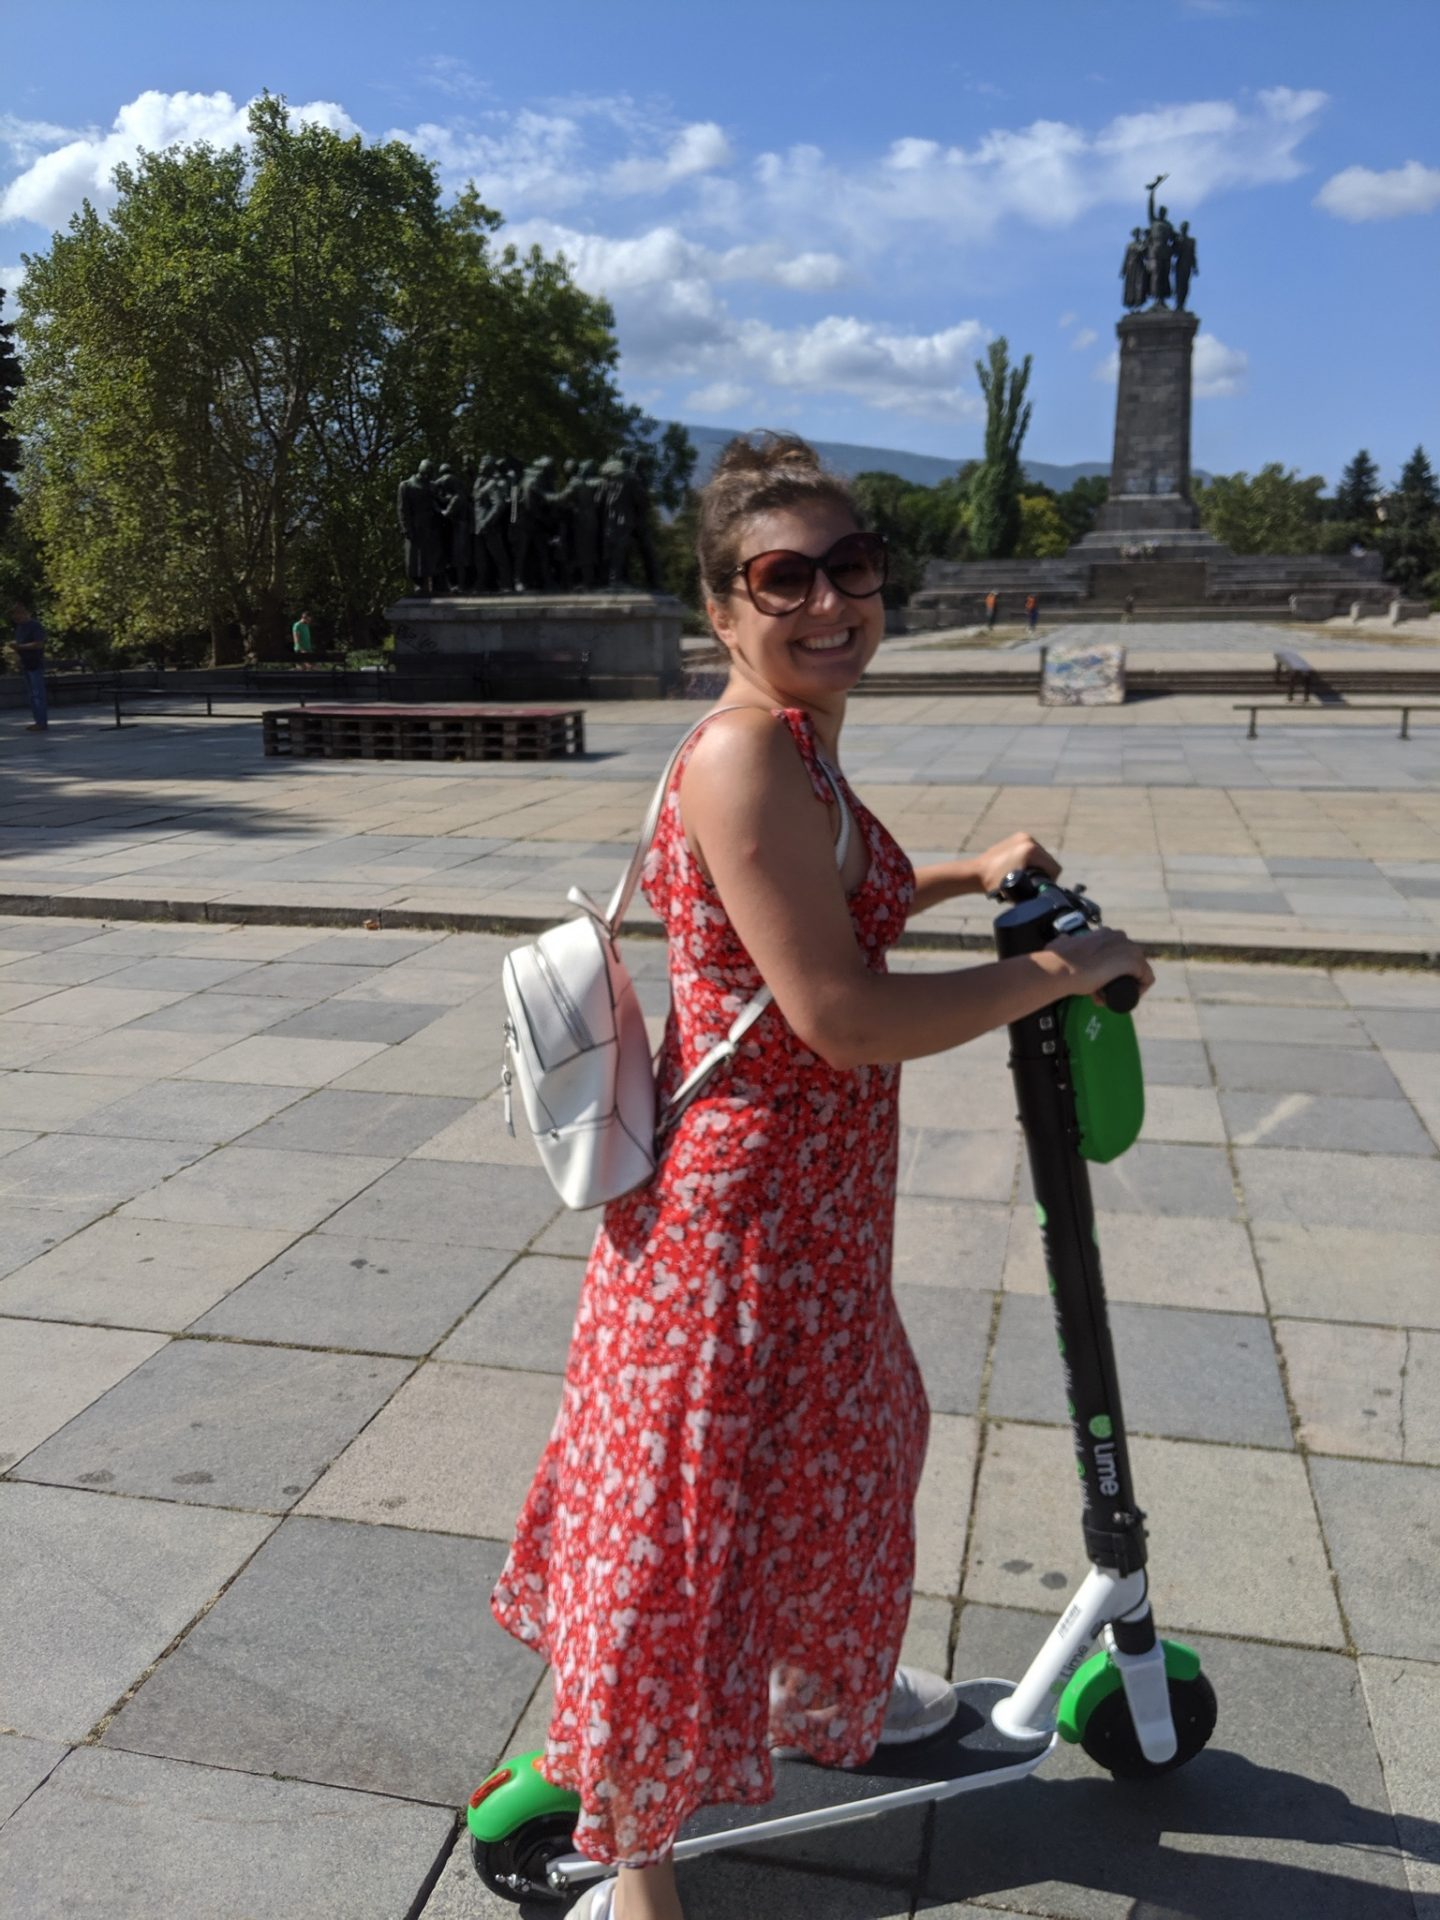 Nell on an electric scooter in Sofia. She's smiling at the camera and wearing a flowing red, floral dress